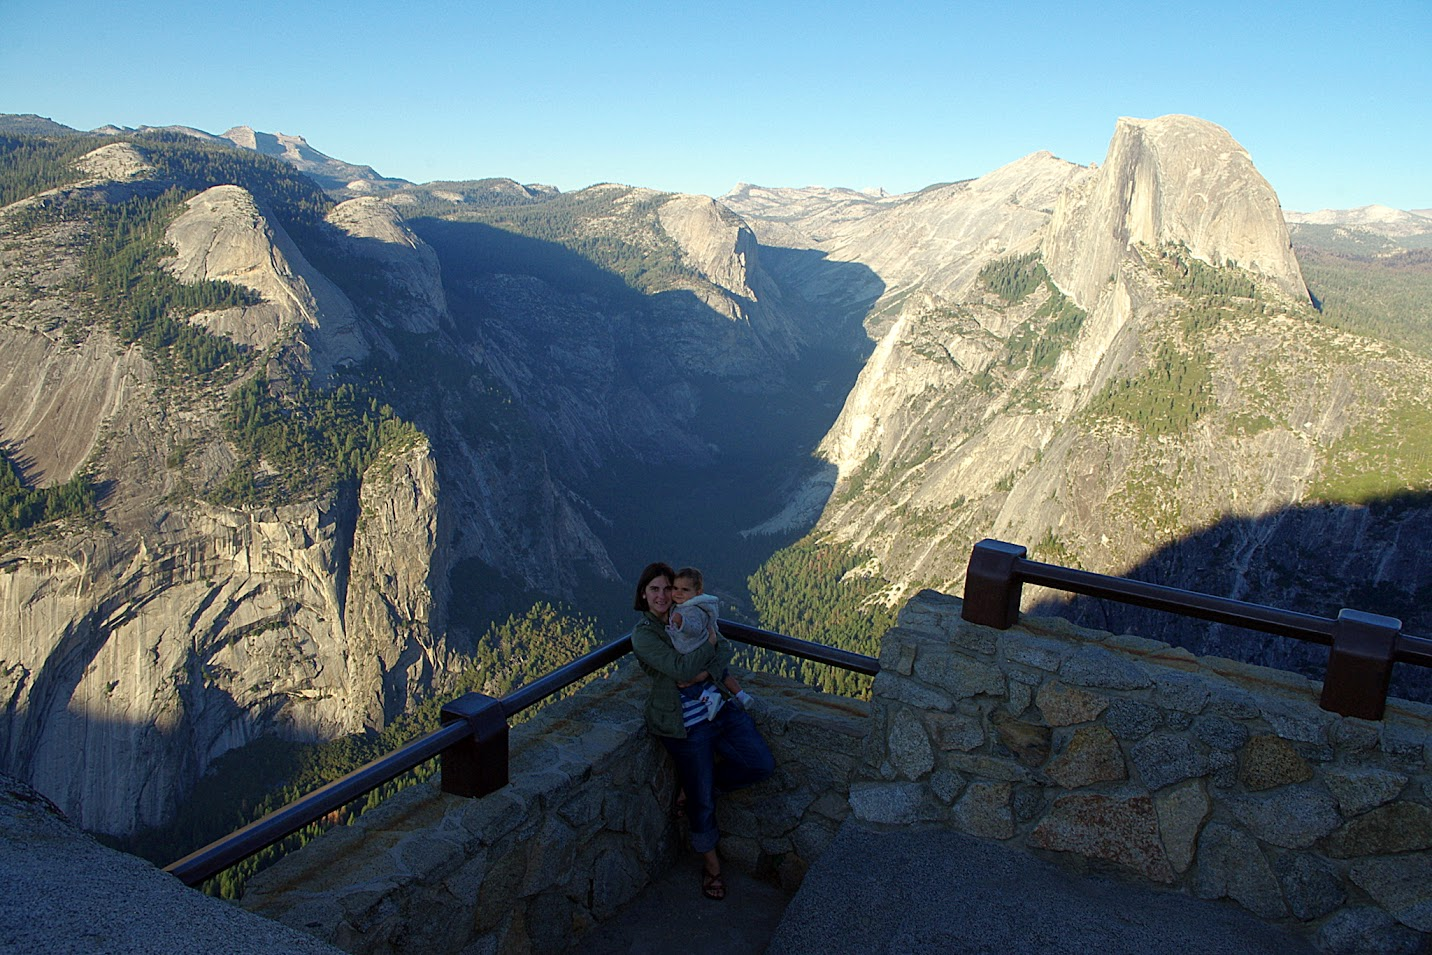 Valle de Yosemite, Glaciar Point